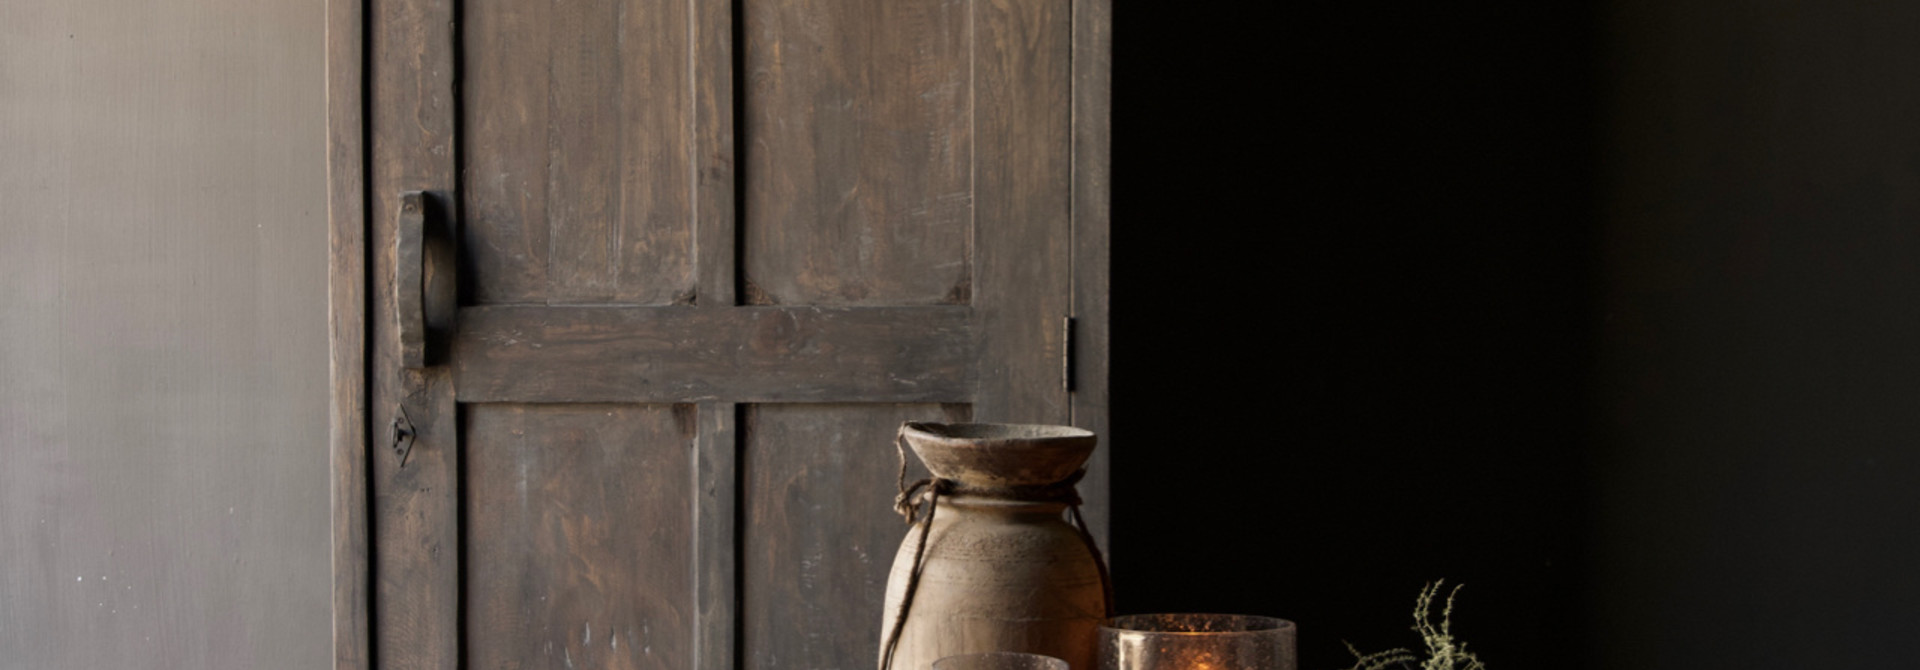 Sturdy solid door cabinet made of old wood with a drawer